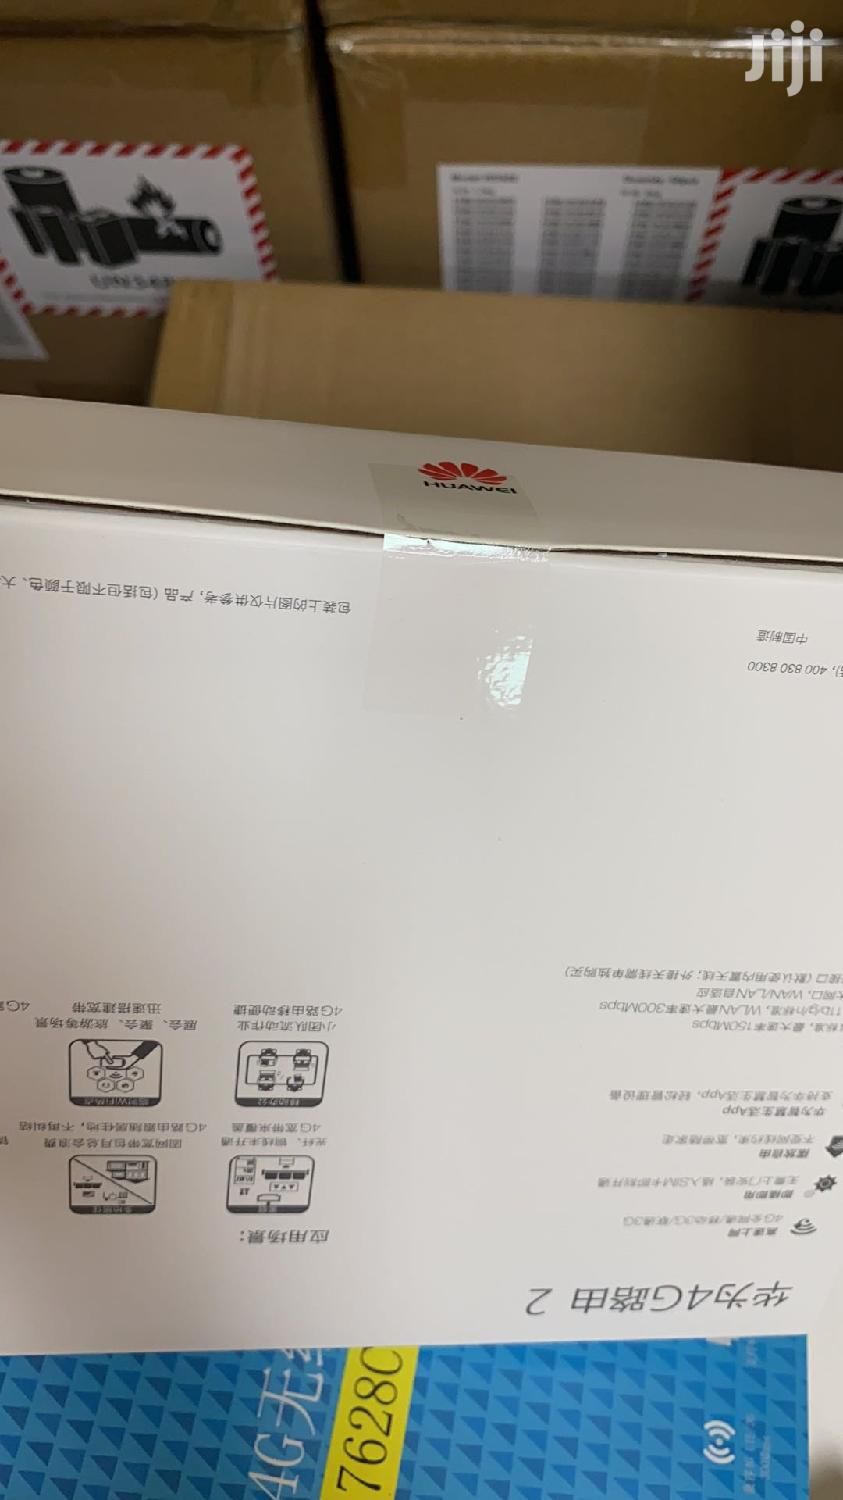 Huawei B311-853 4g Lte Unlocked Routers   Networking Products for sale in Kampala, Central Region, Uganda